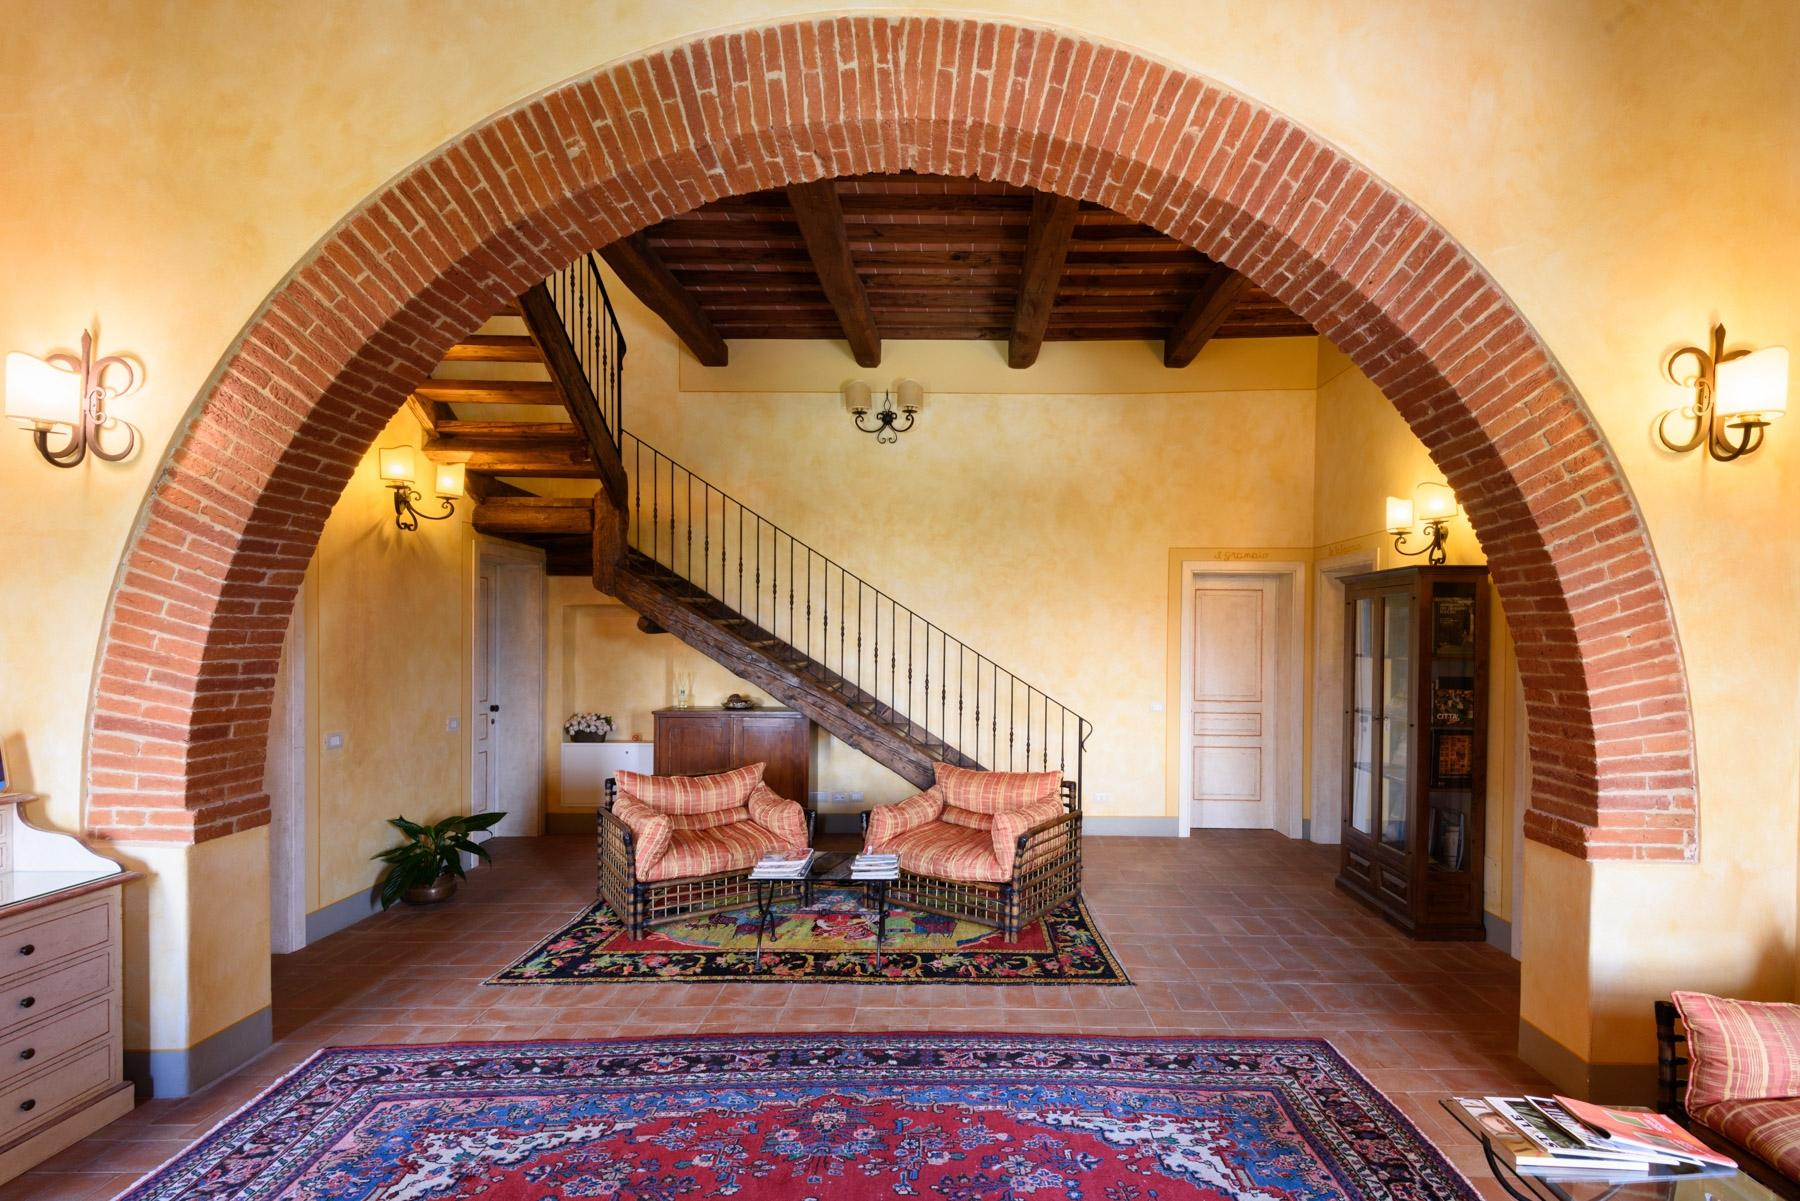 Country hotel with adjacent private villa near Siena - 10